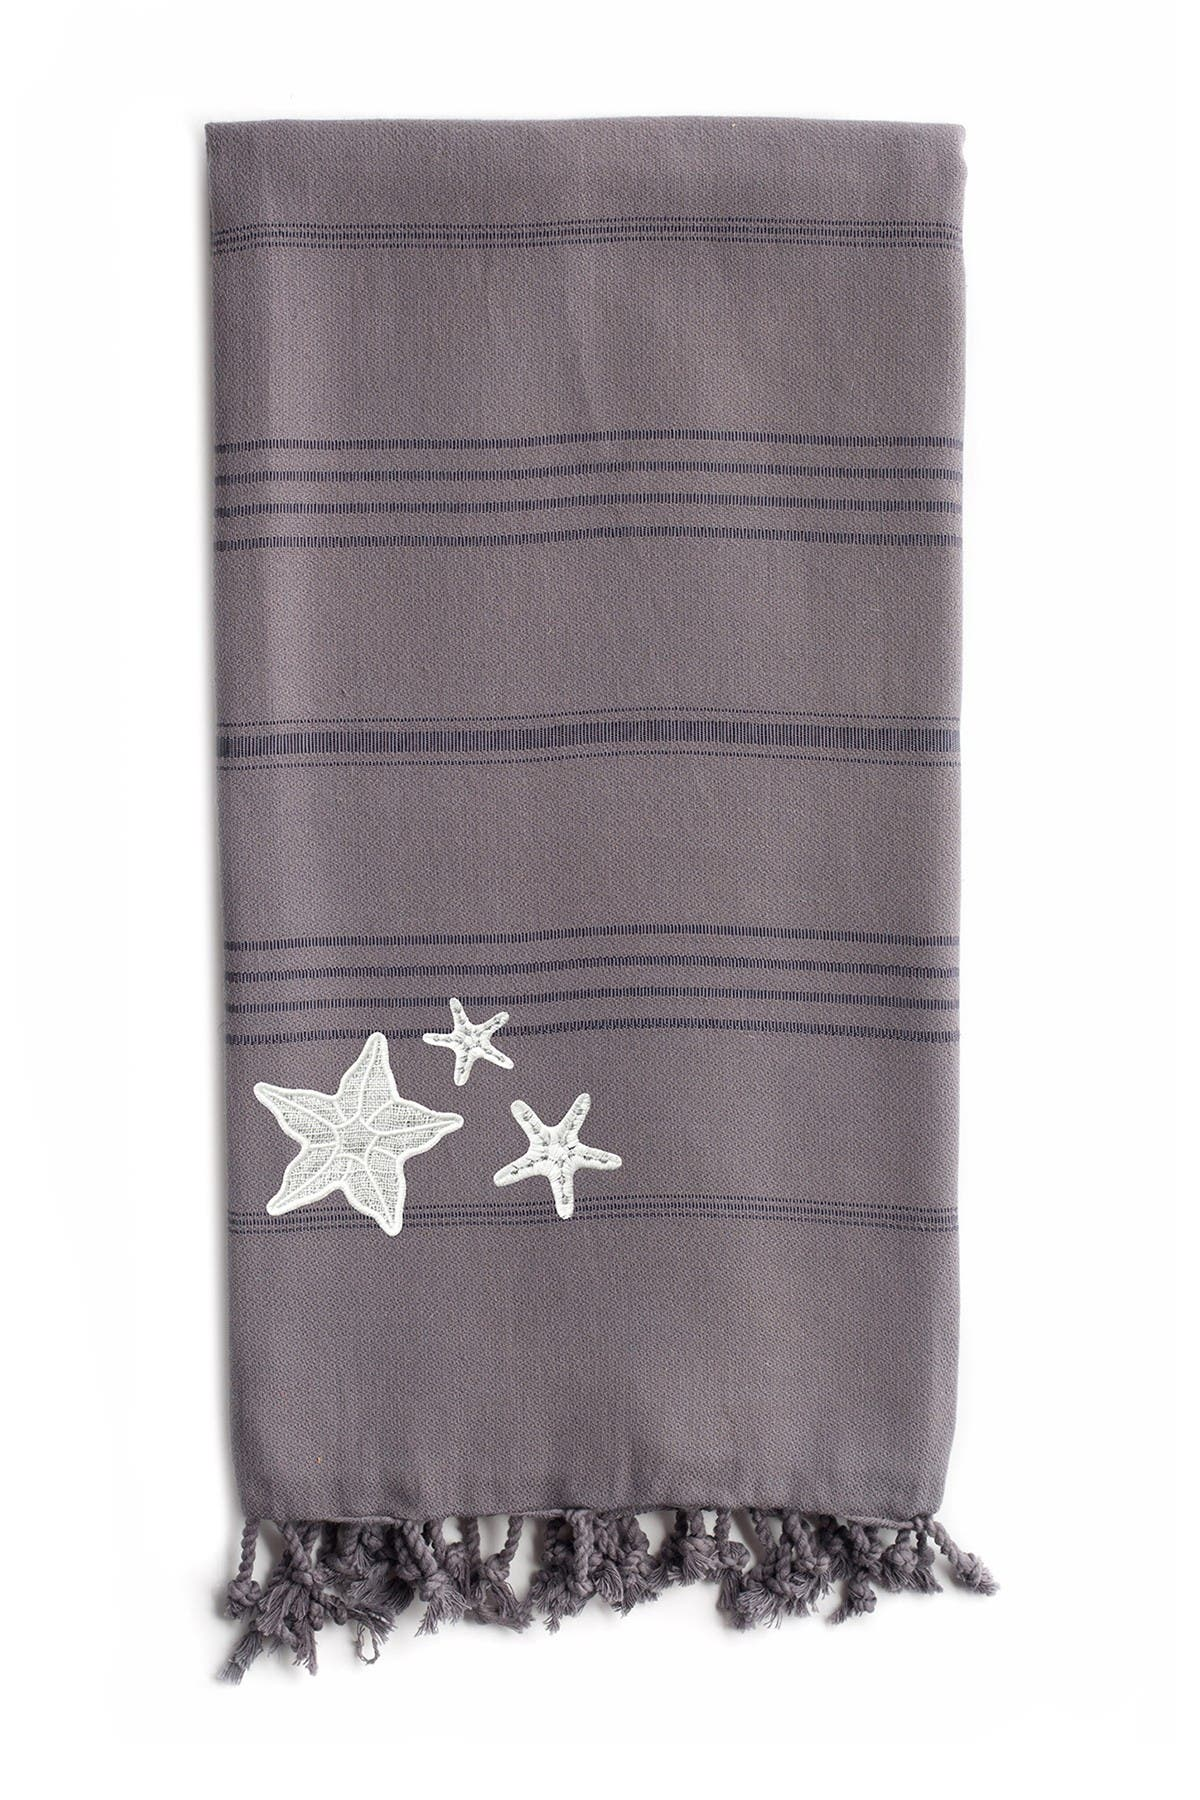 Image of LINUM HOME 100% Turkish Cotton Summer Fun - Glittery Starfish Pestemal Beach Towel - Grey